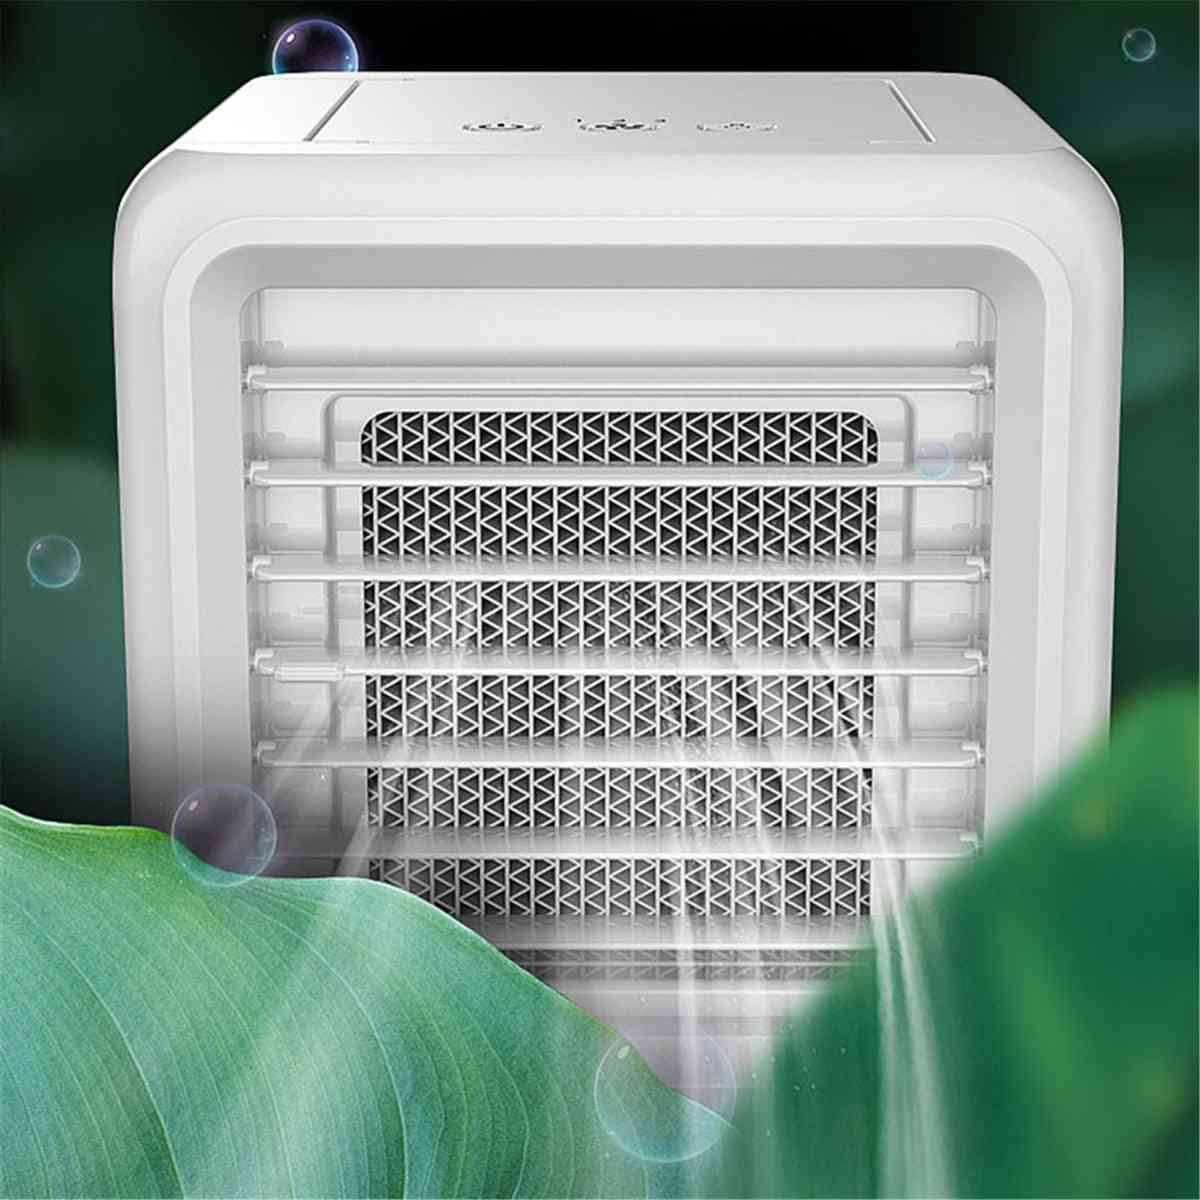 Mini Air Conditioner Led Conditioning Humidifier Purifier Usb Desktop Air Cooler (white)